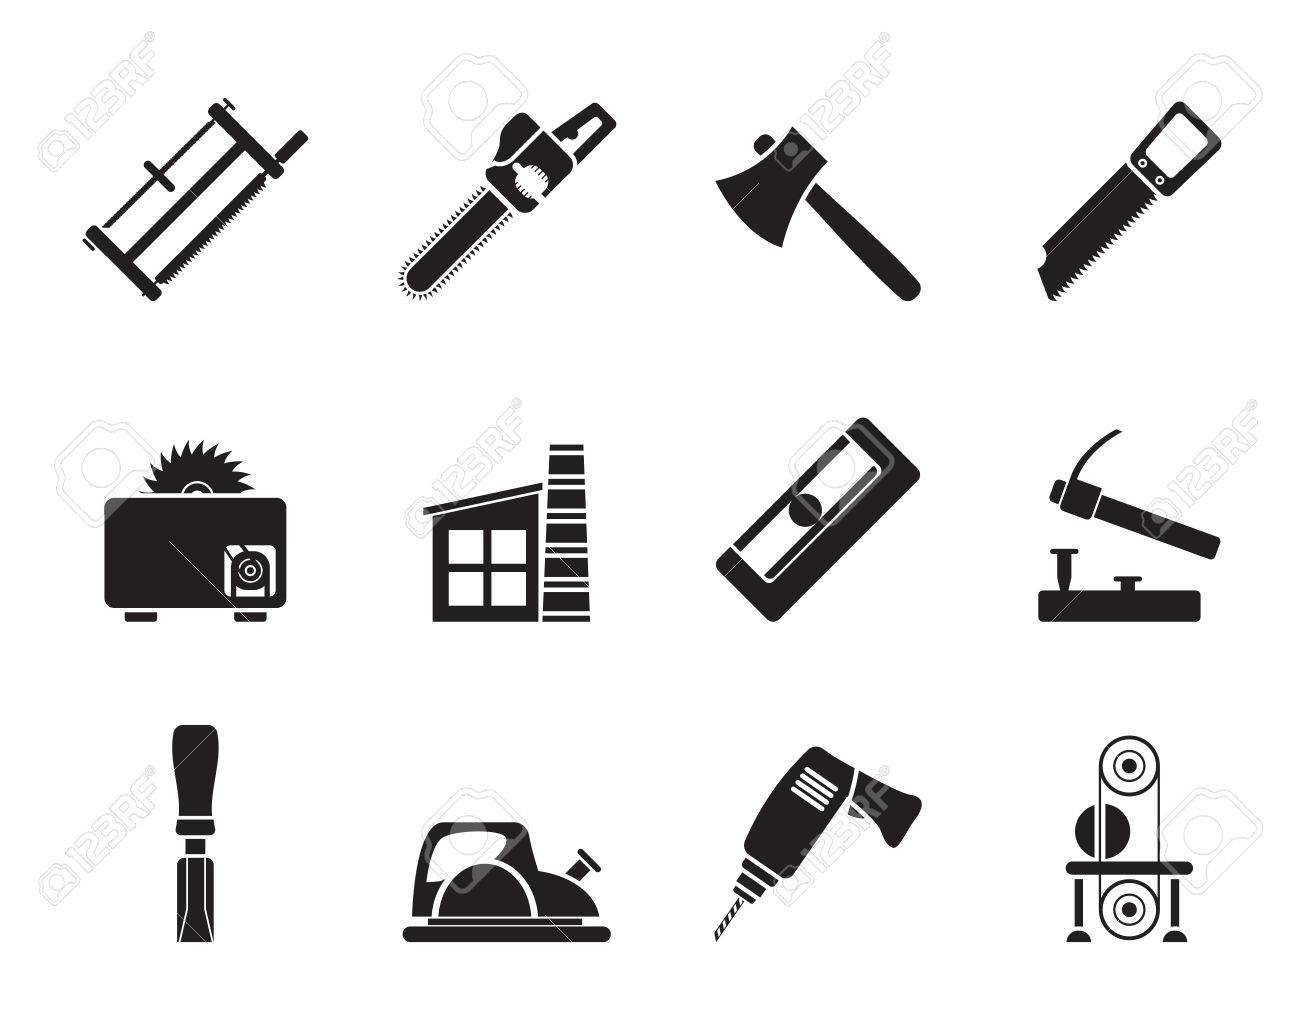 Silhouette Woodworking Industry And Woodworking Tools Icons Royalty